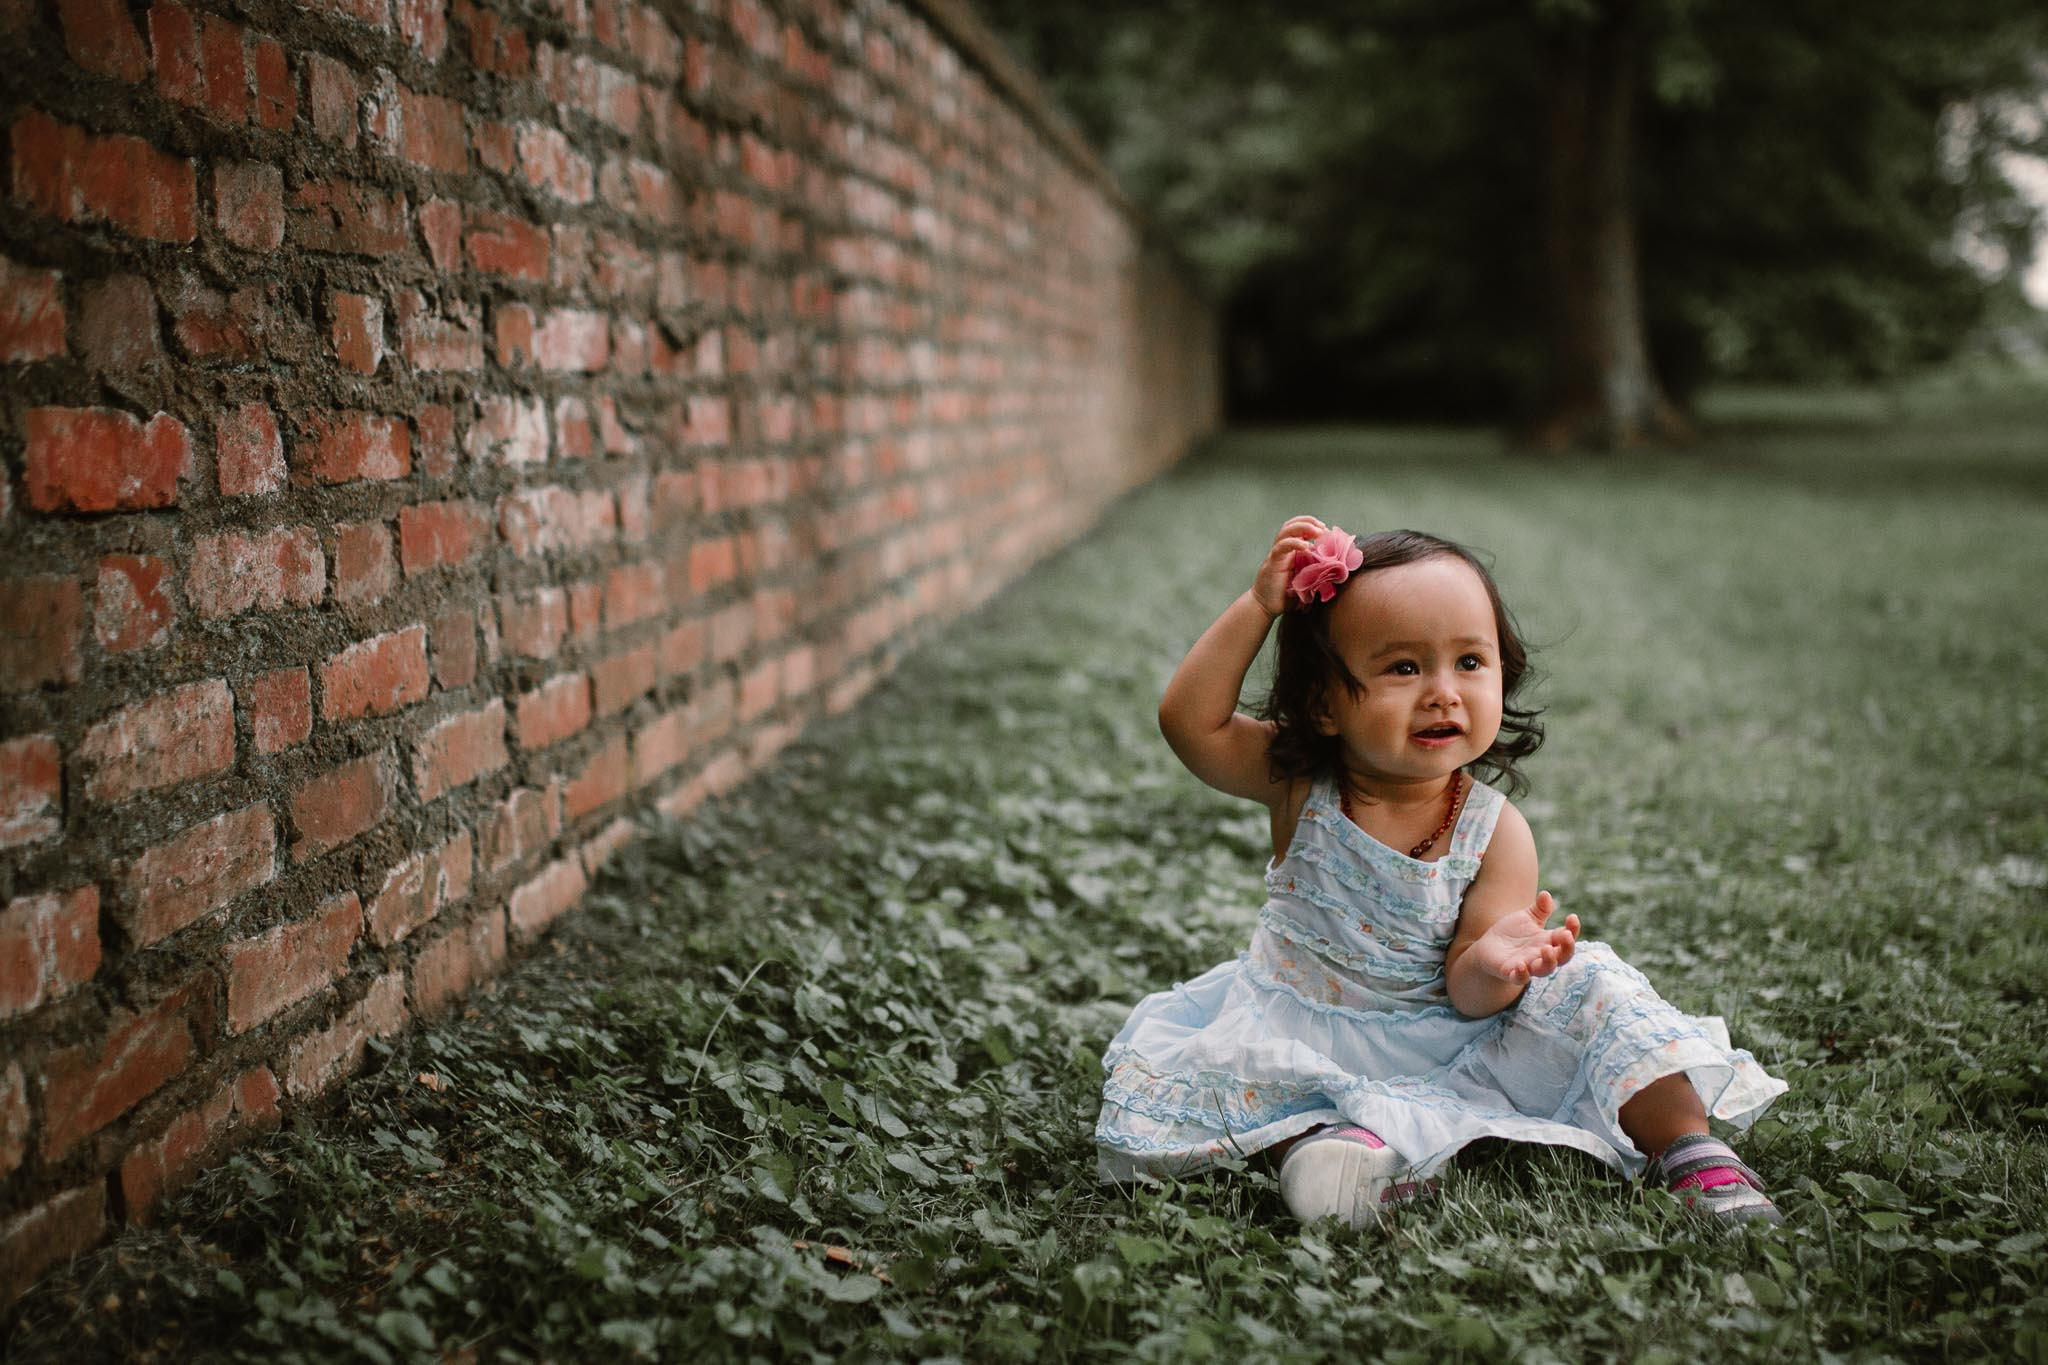 portrait of a toddler in a blue dress at Morven Park in Leesburg, Virginia